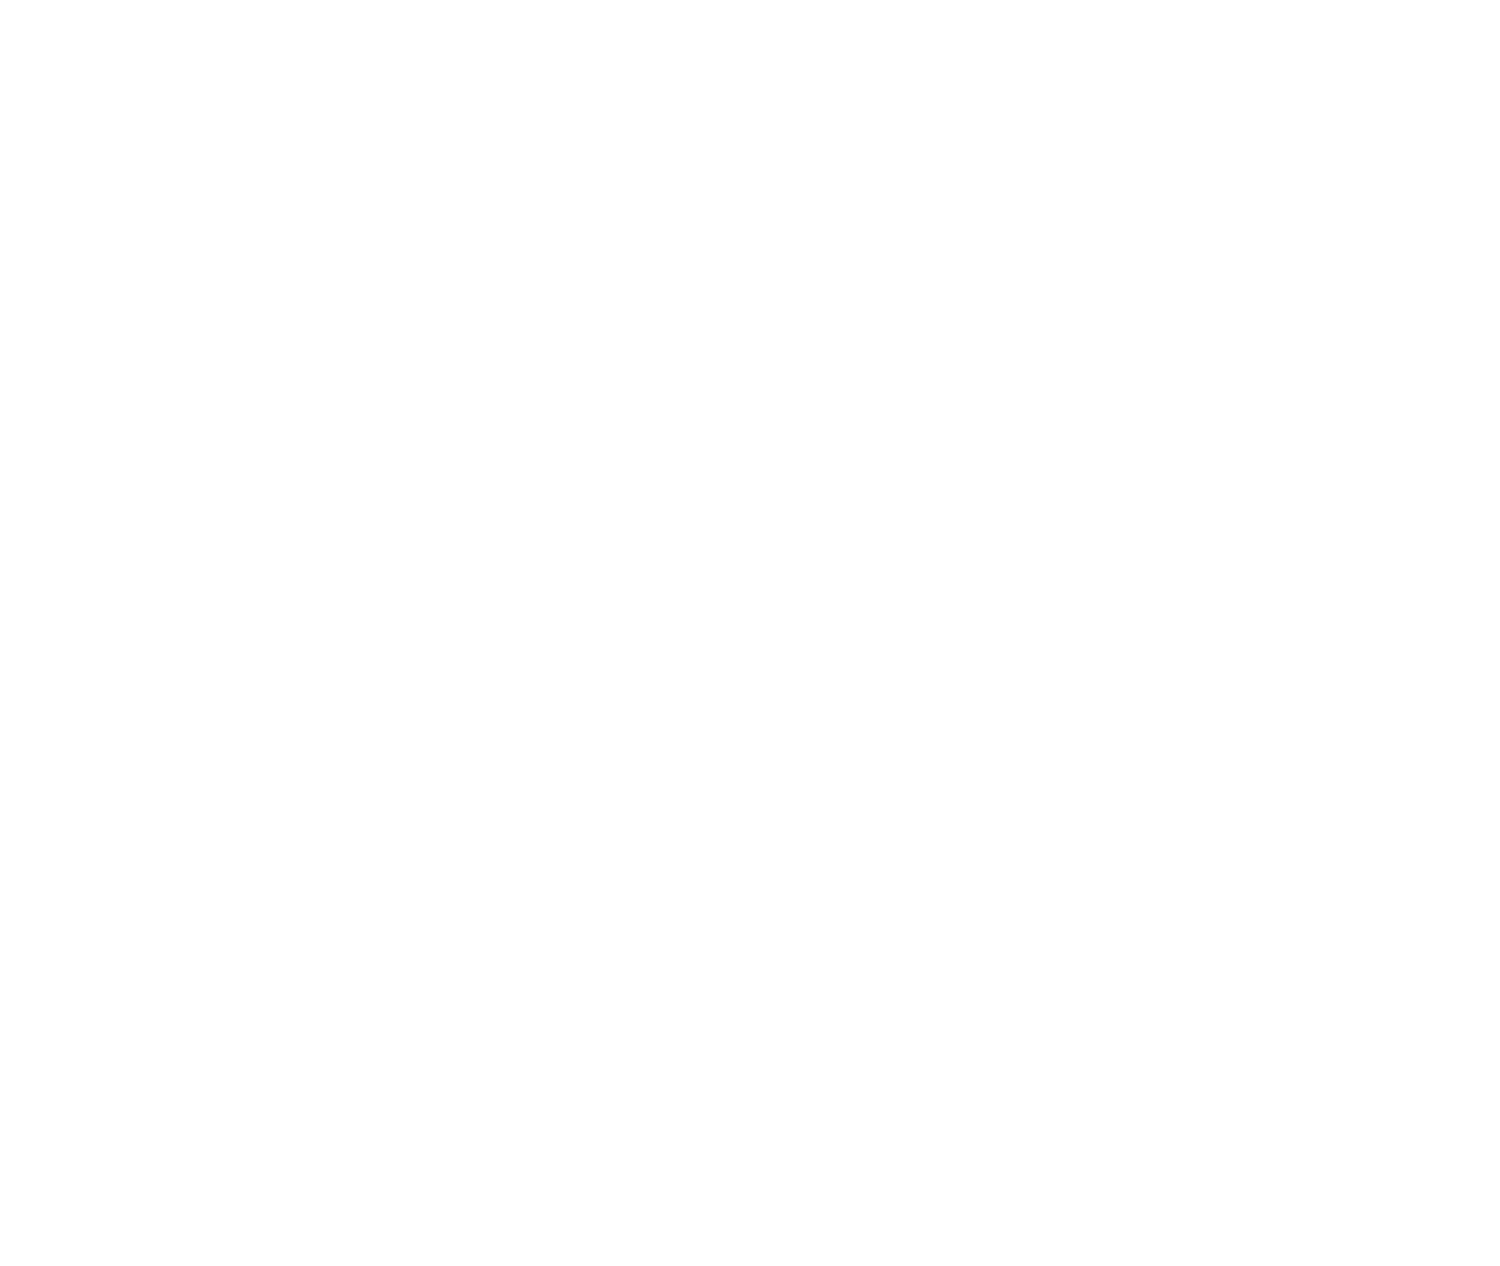 Blackmore Fencing Limited